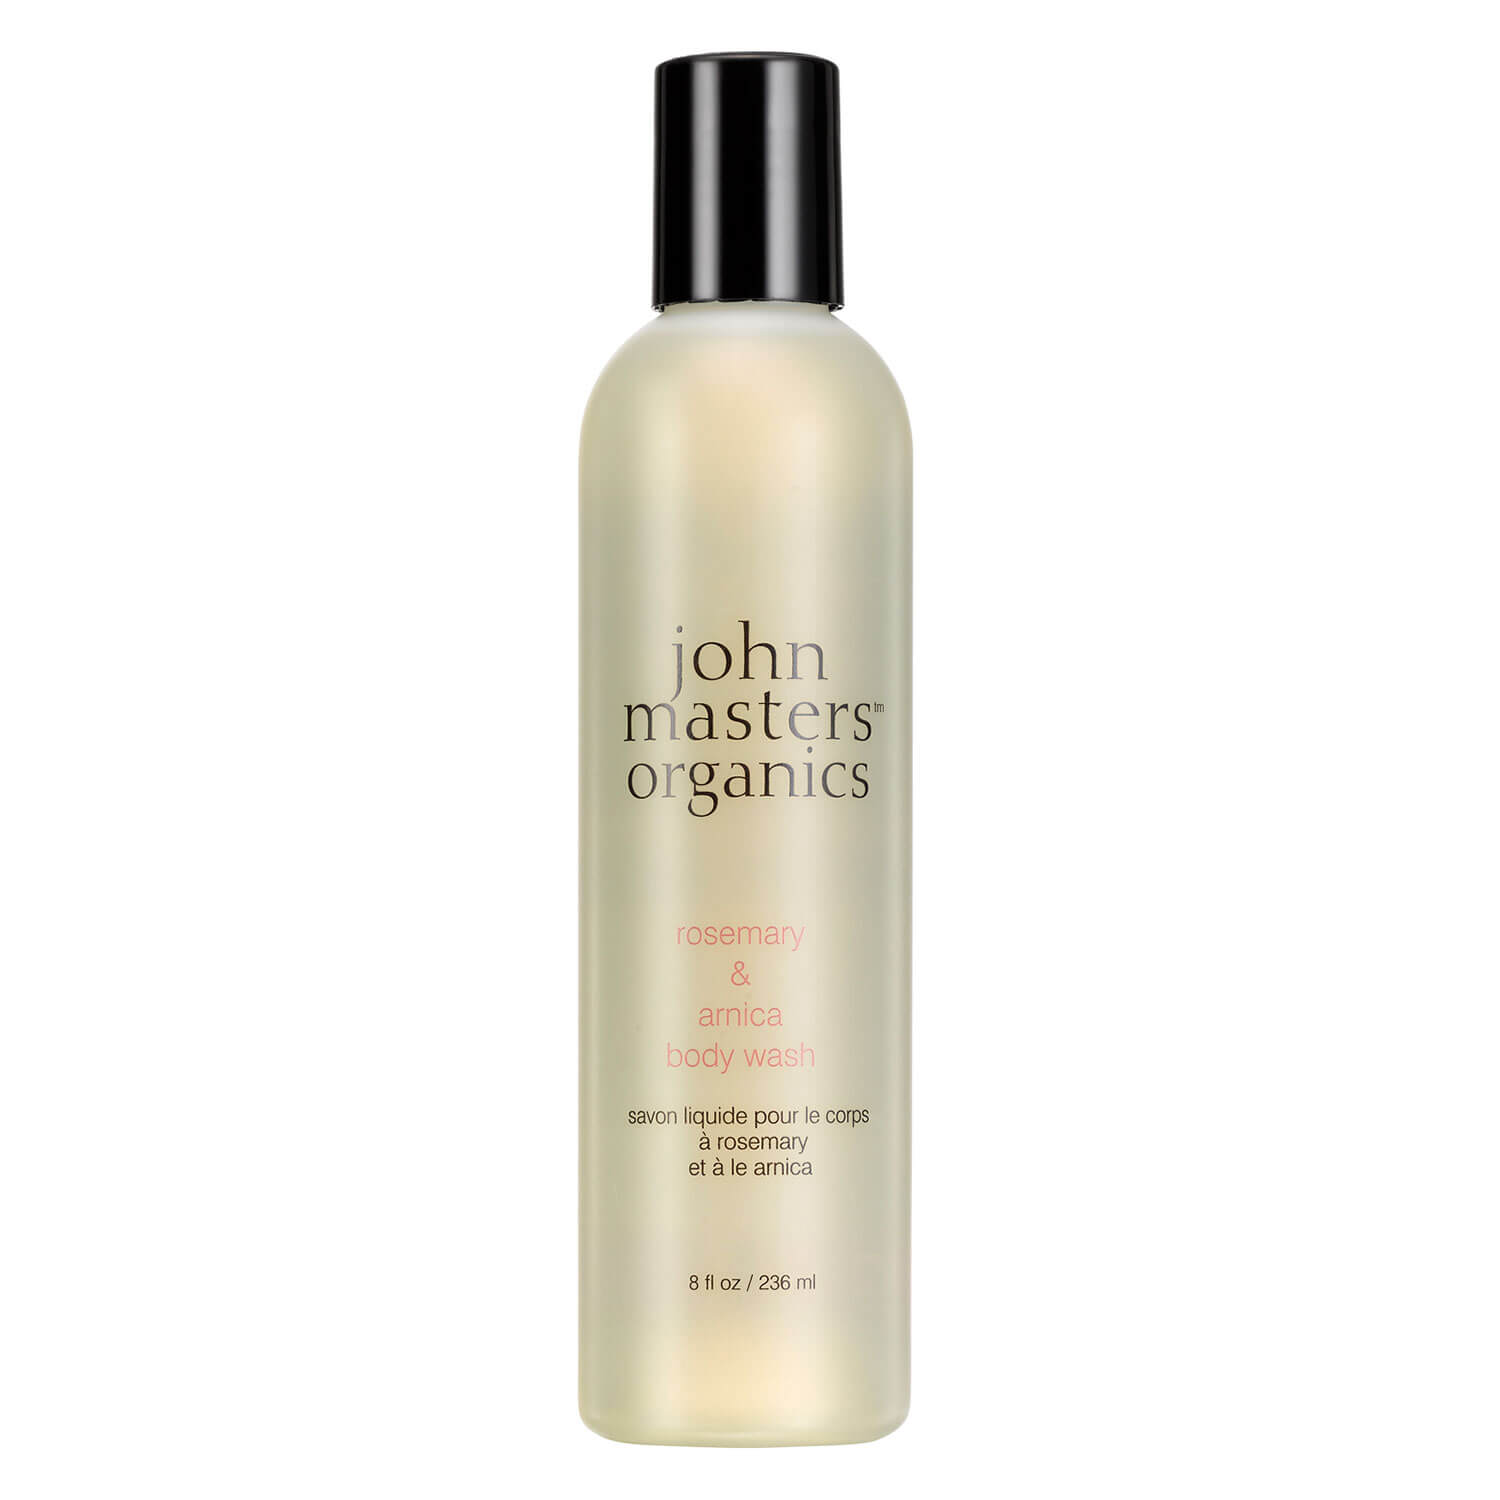 JMO Skin & Body Care - Rosemary & Arnica Body Wash